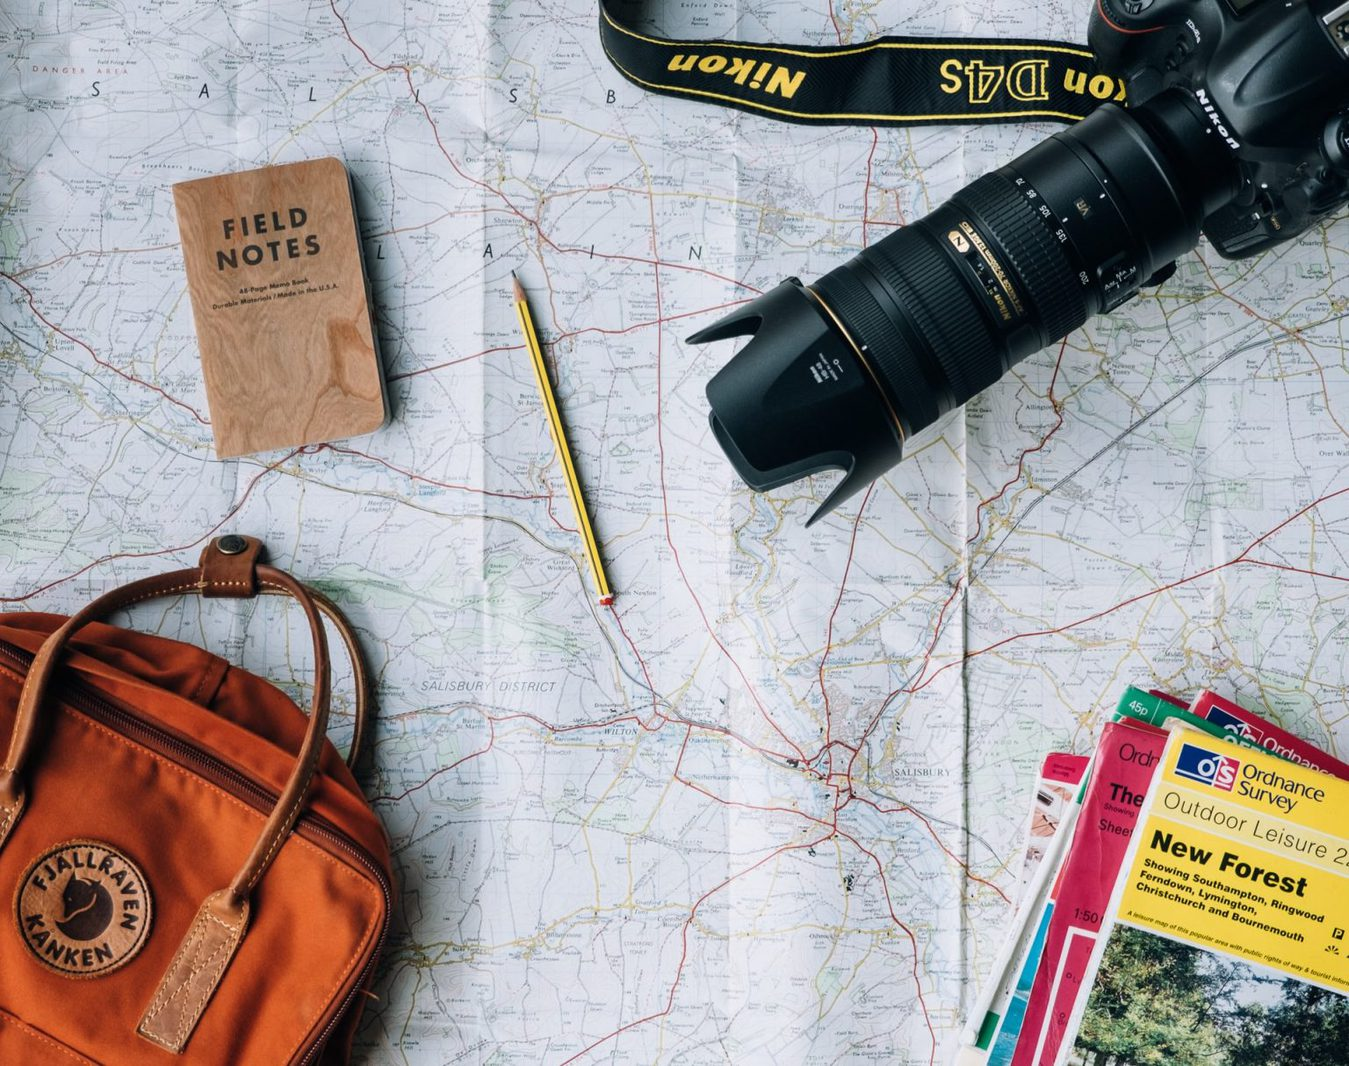 A map with a camera and notebooks on it